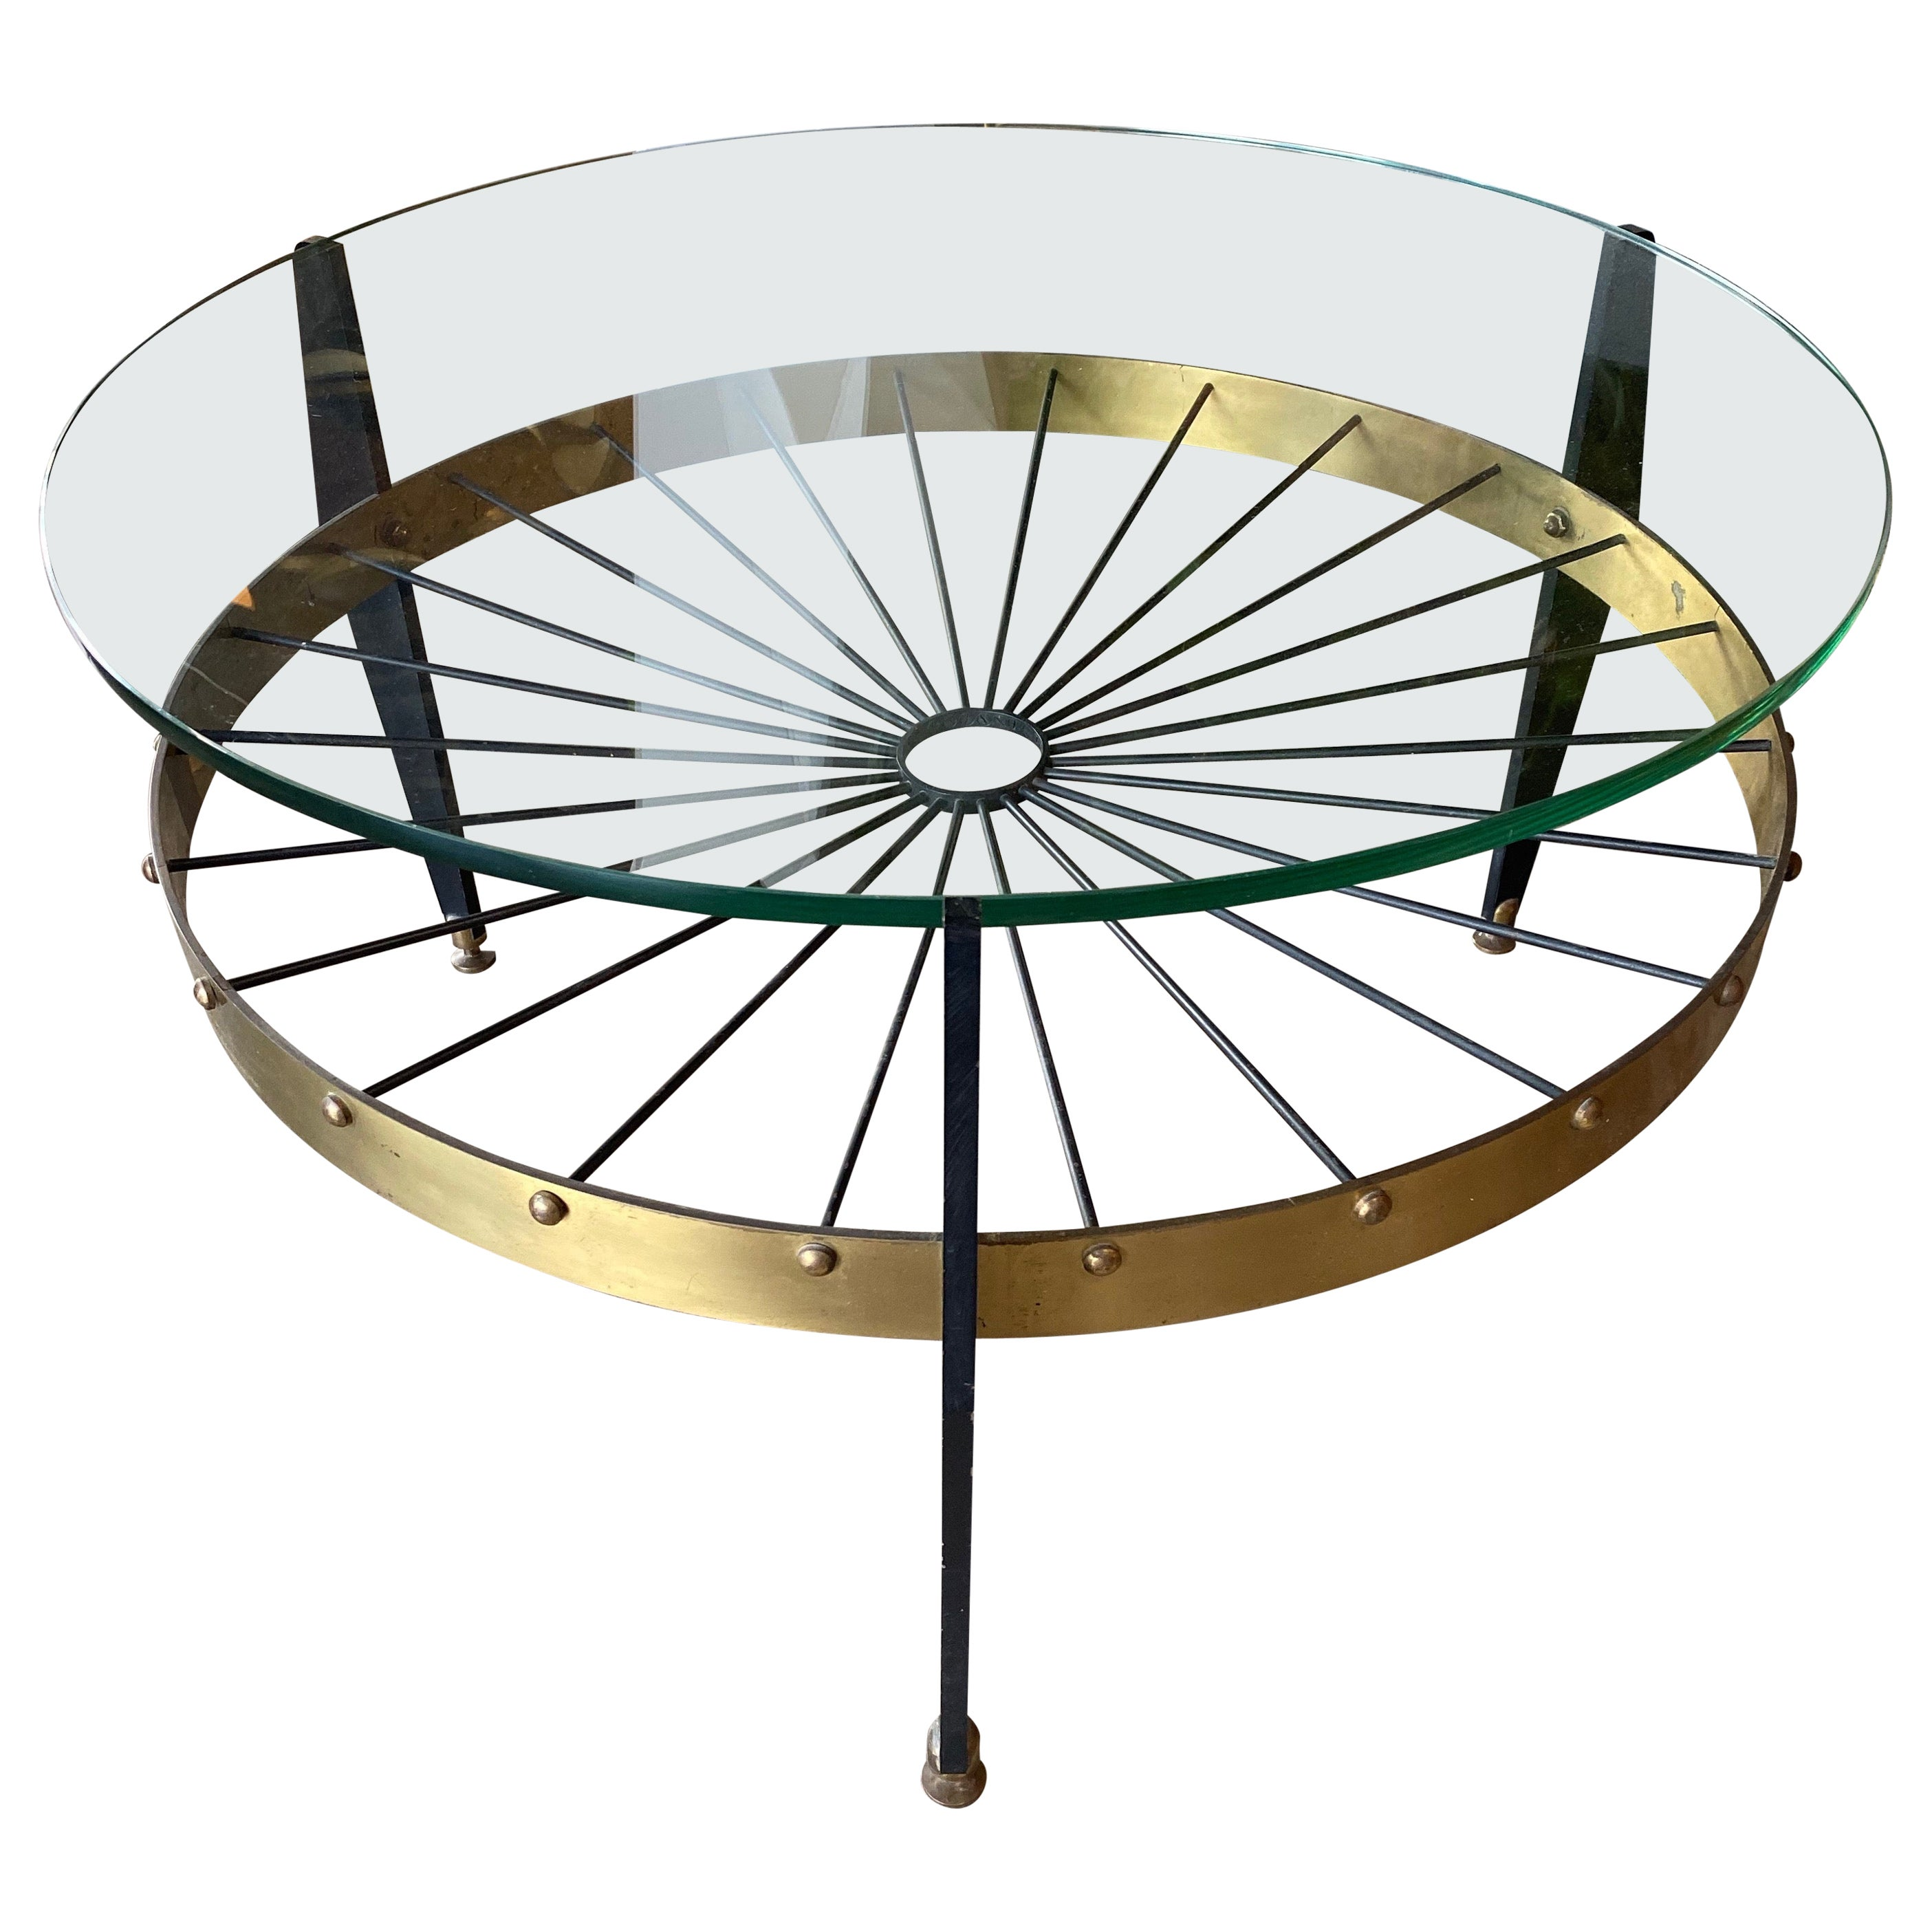 Italian Midcentury Round Coffee Table in Glass and Brass, 1960s